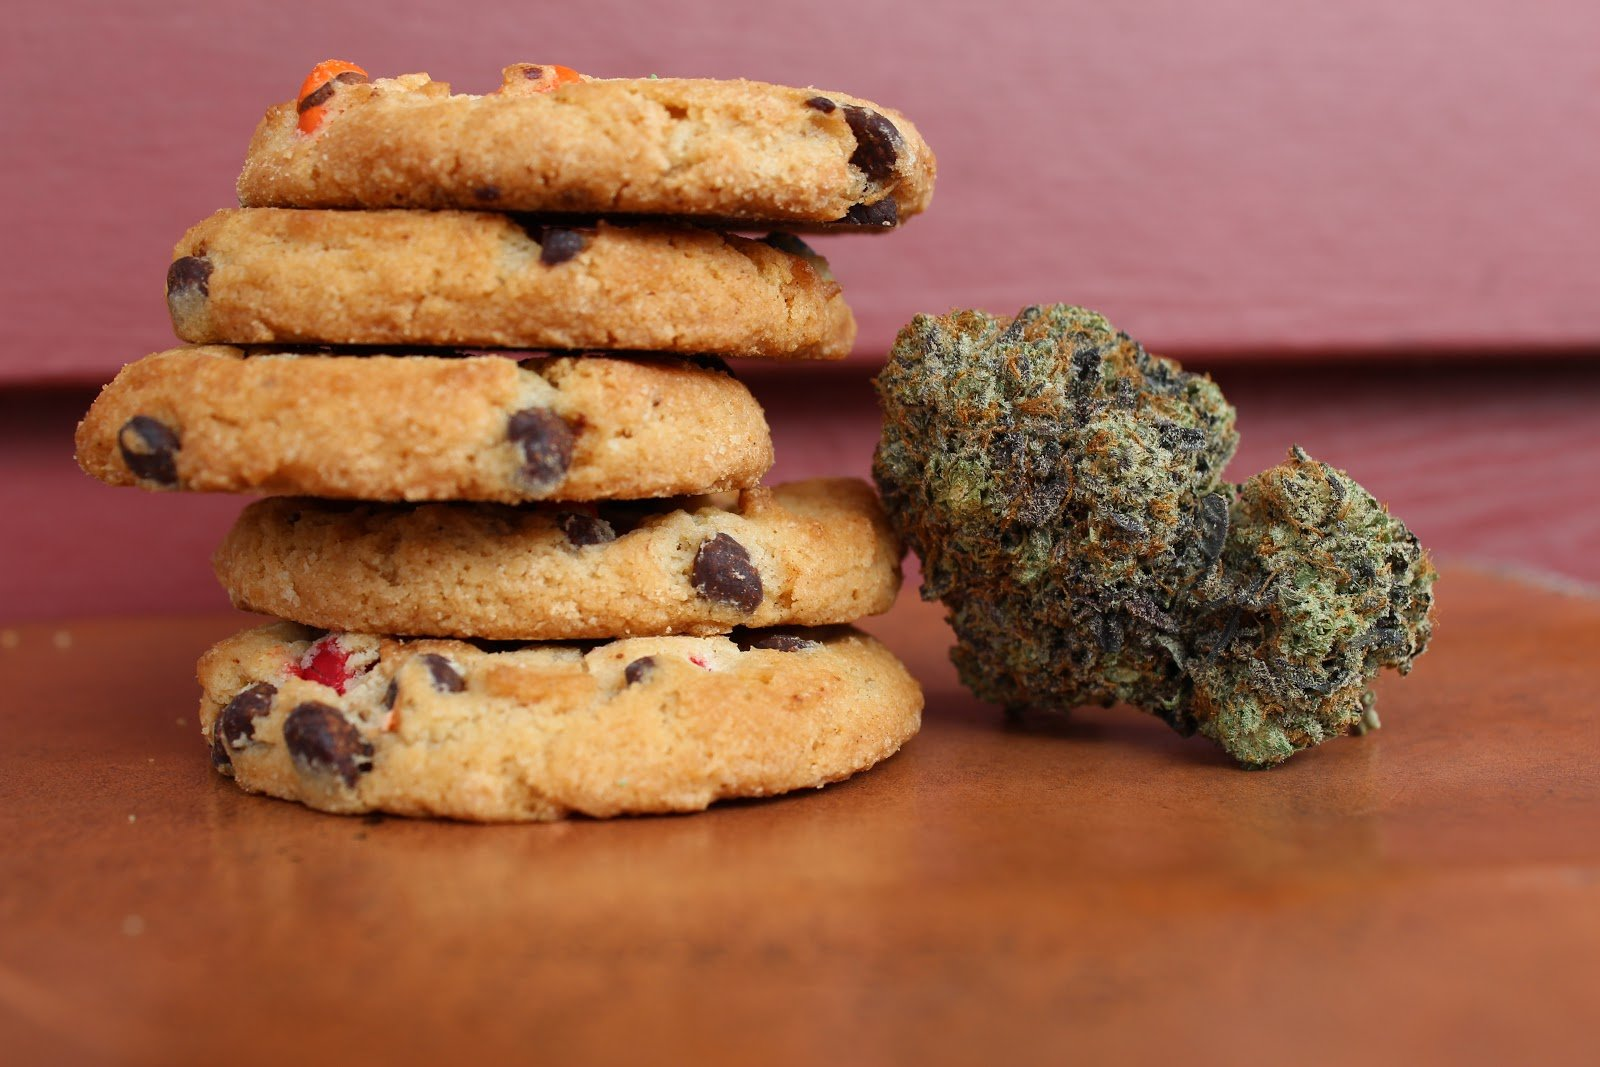 chocolate chip cookies are stacked next to a gram of cannabis